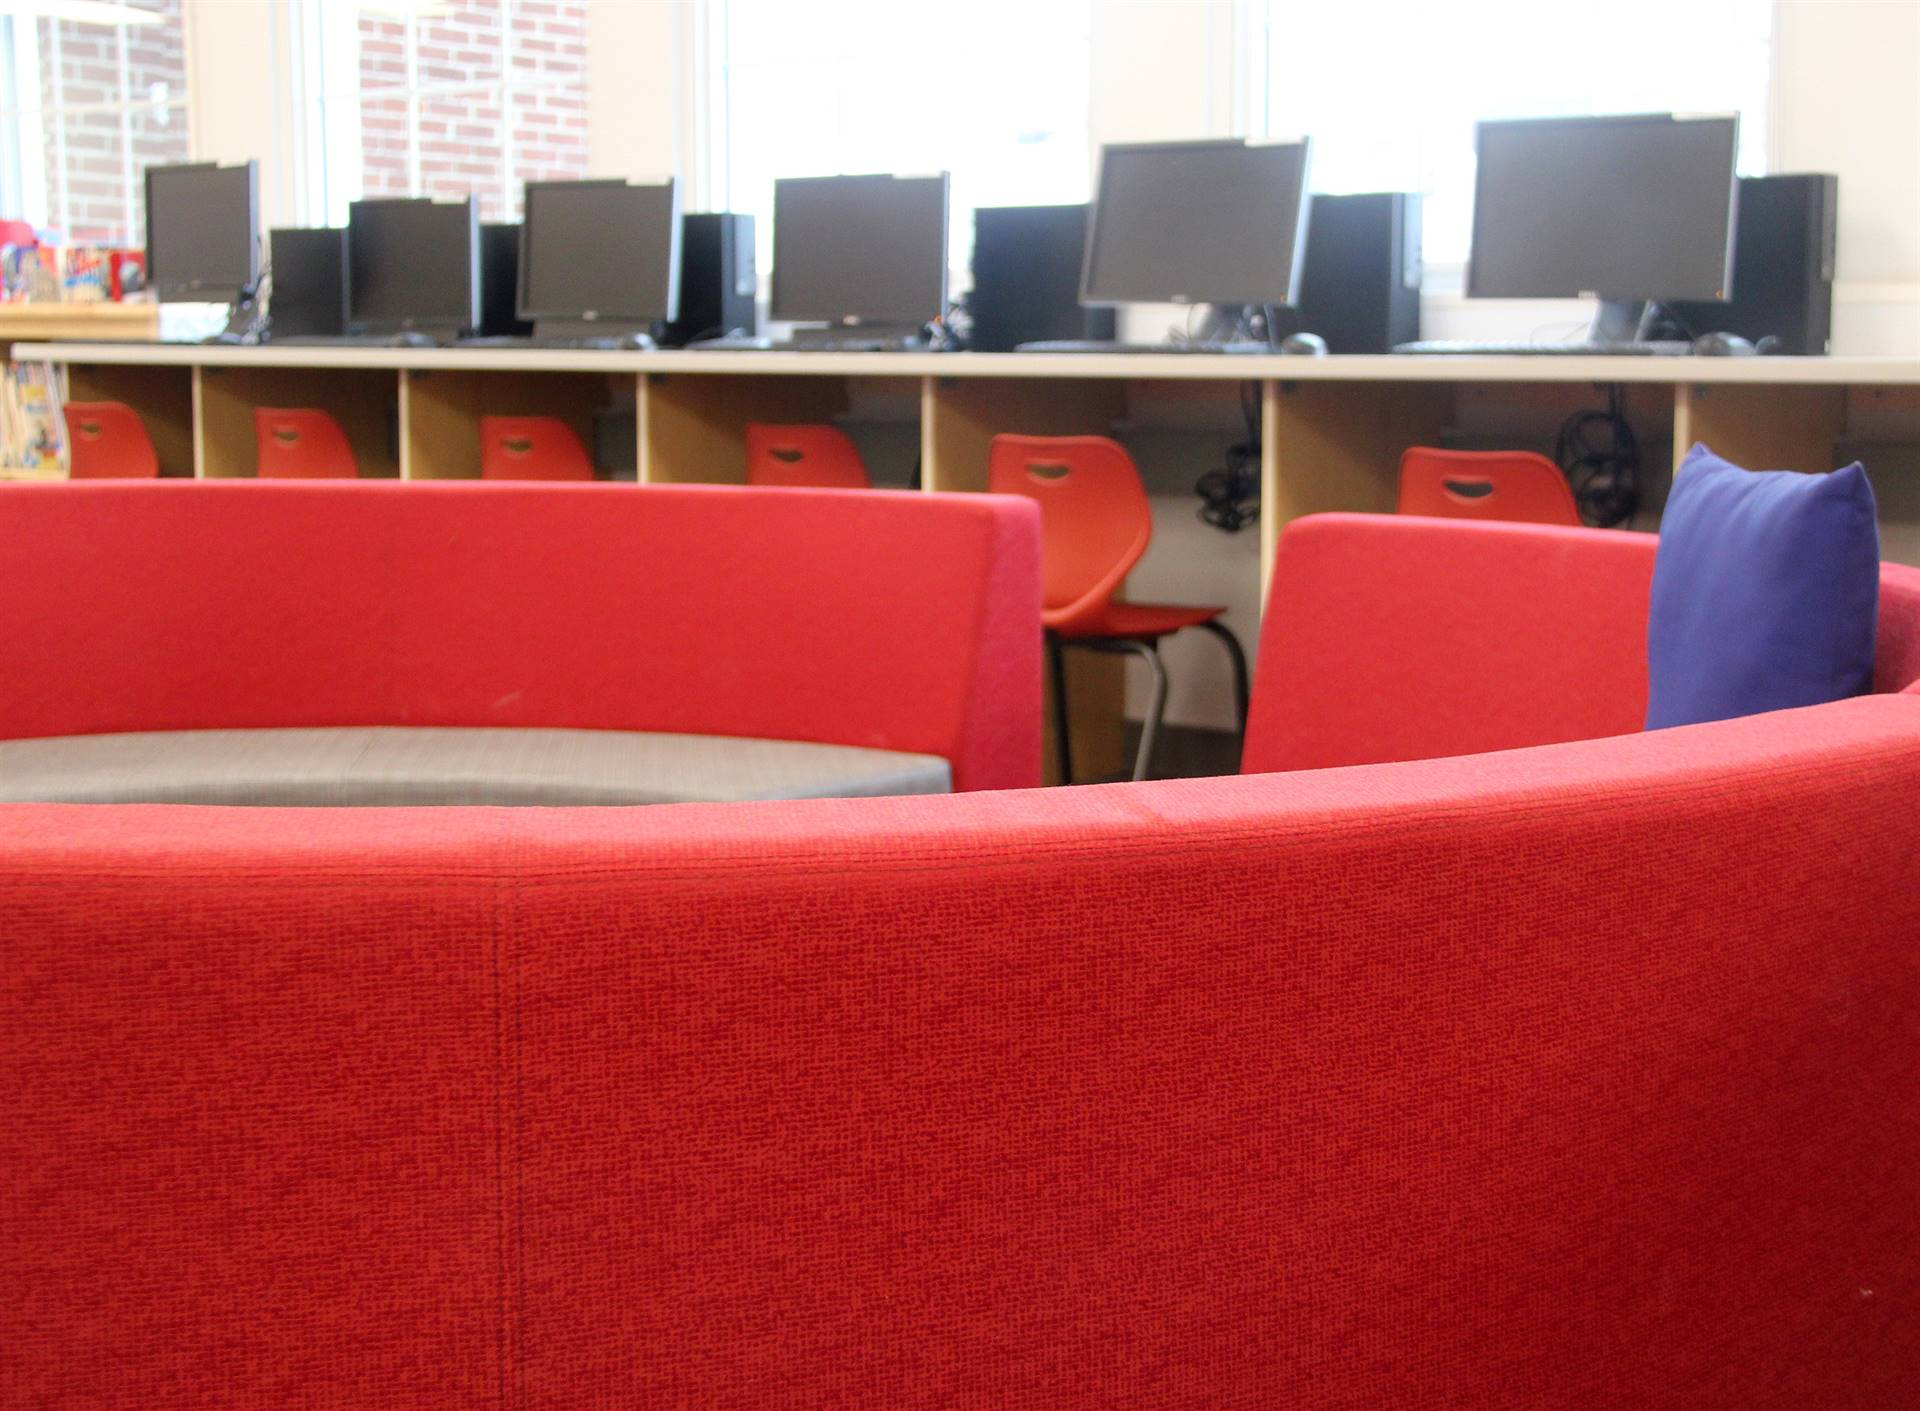 seating and computers in library